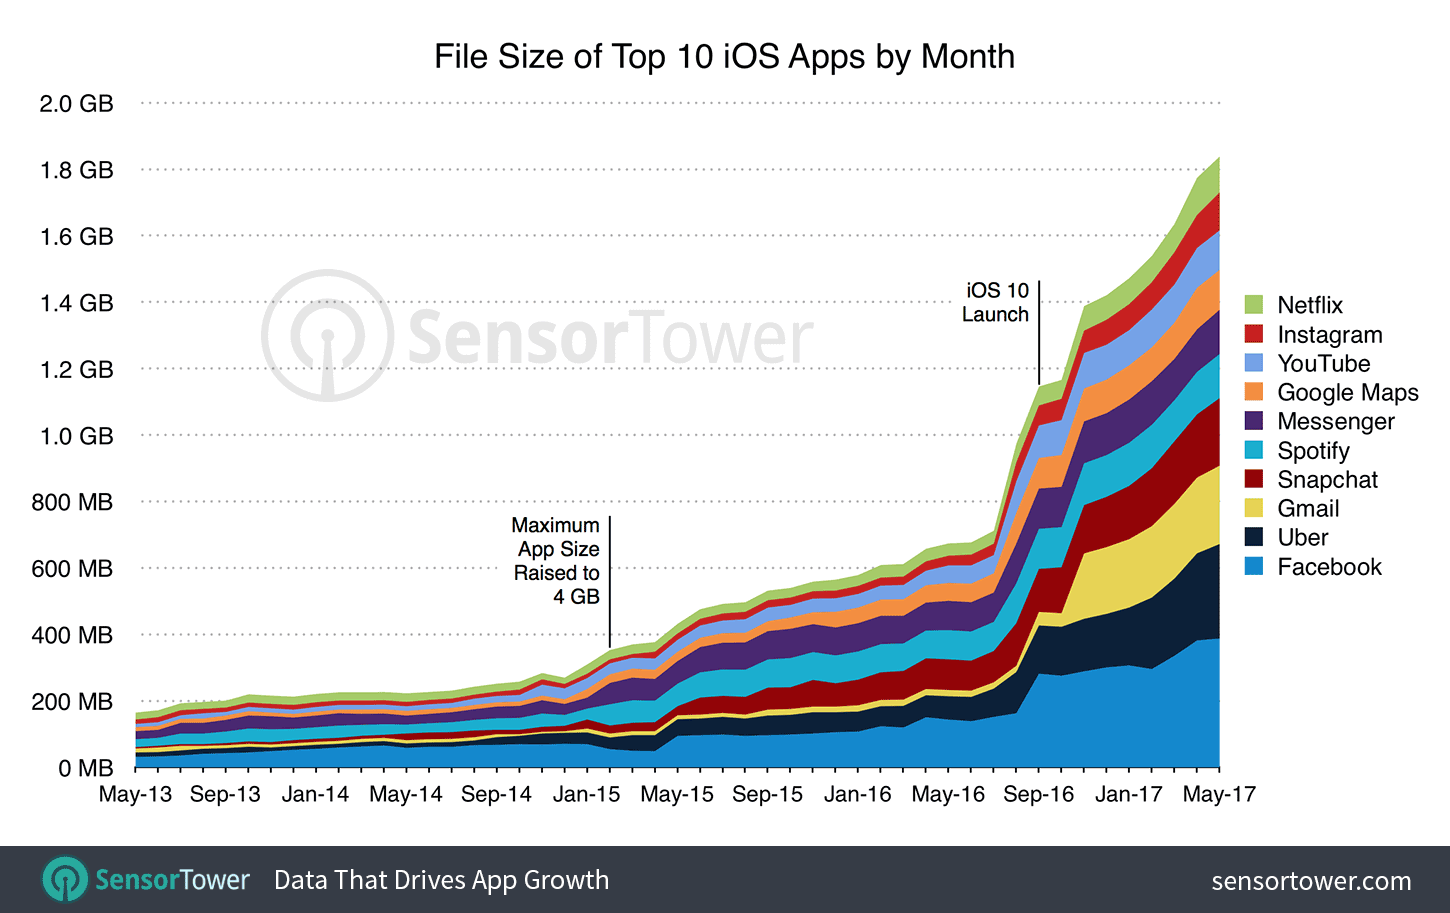 top-10-ios-apps-size-by-month - Sensor Tower